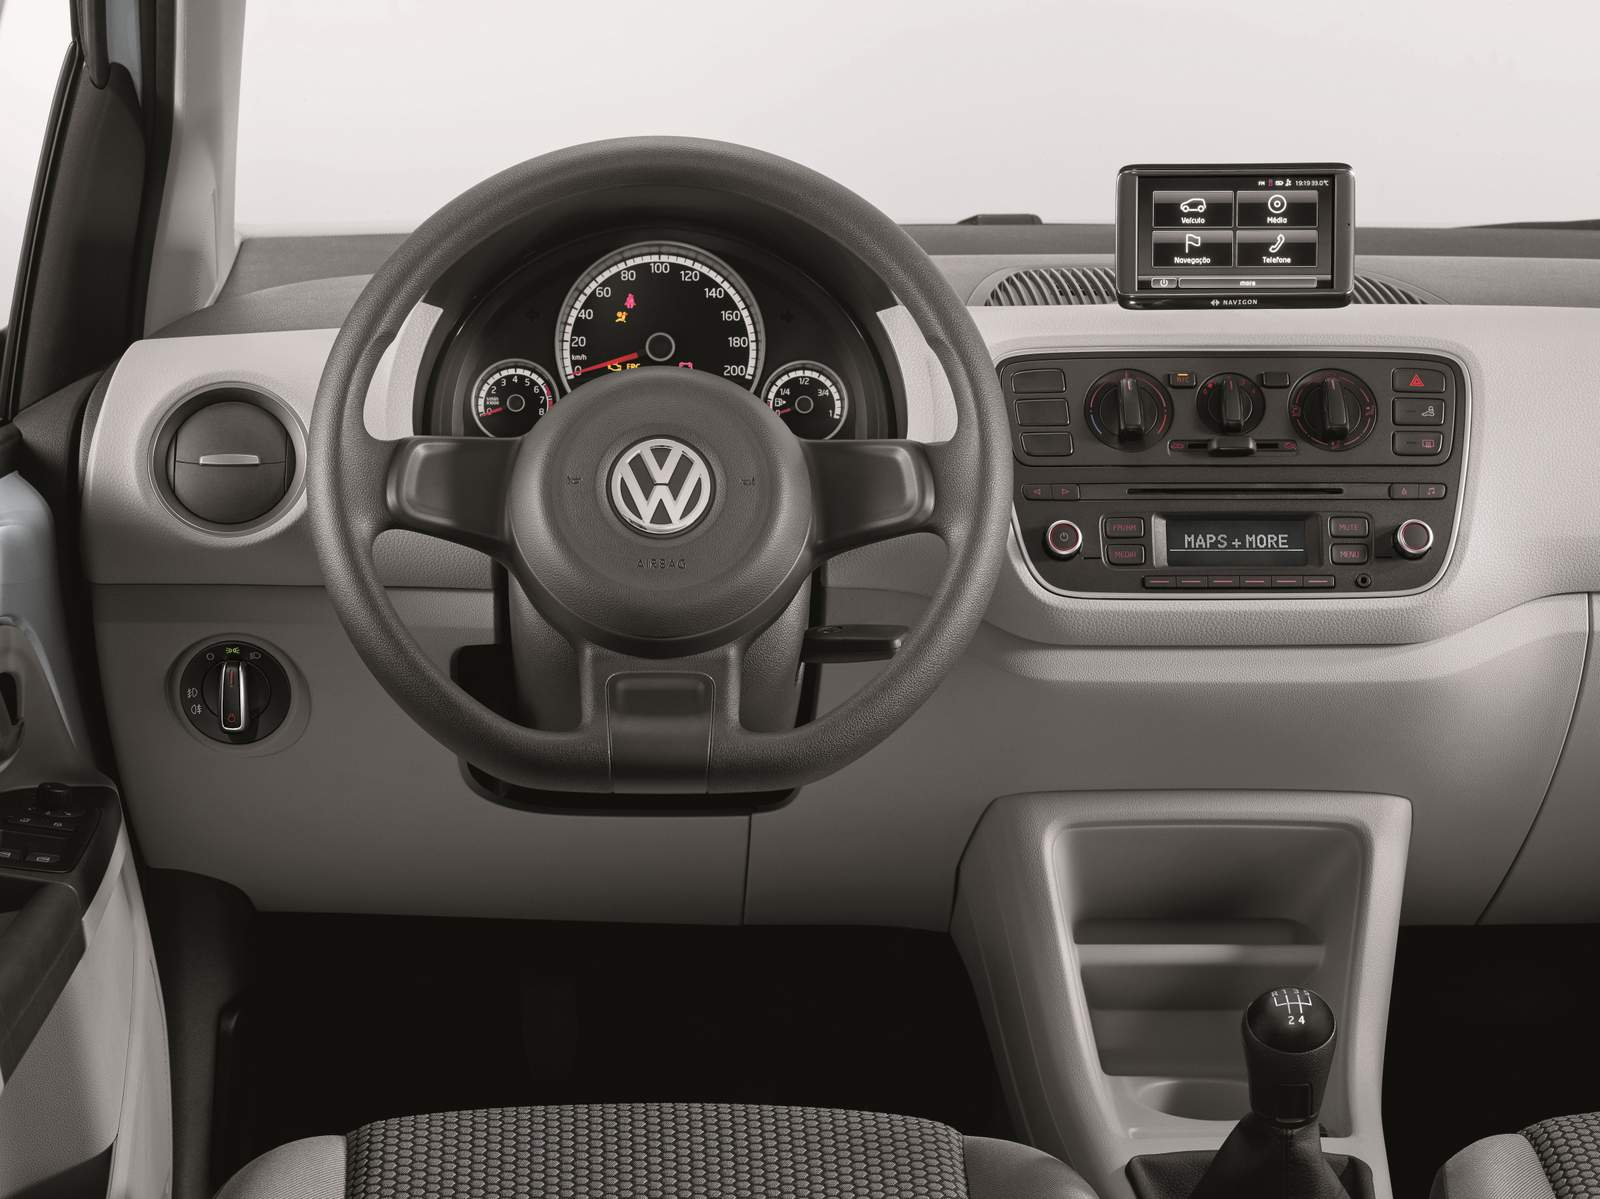 volkswagen up tsi turbo pre o parte de r reais car blog br. Black Bedroom Furniture Sets. Home Design Ideas